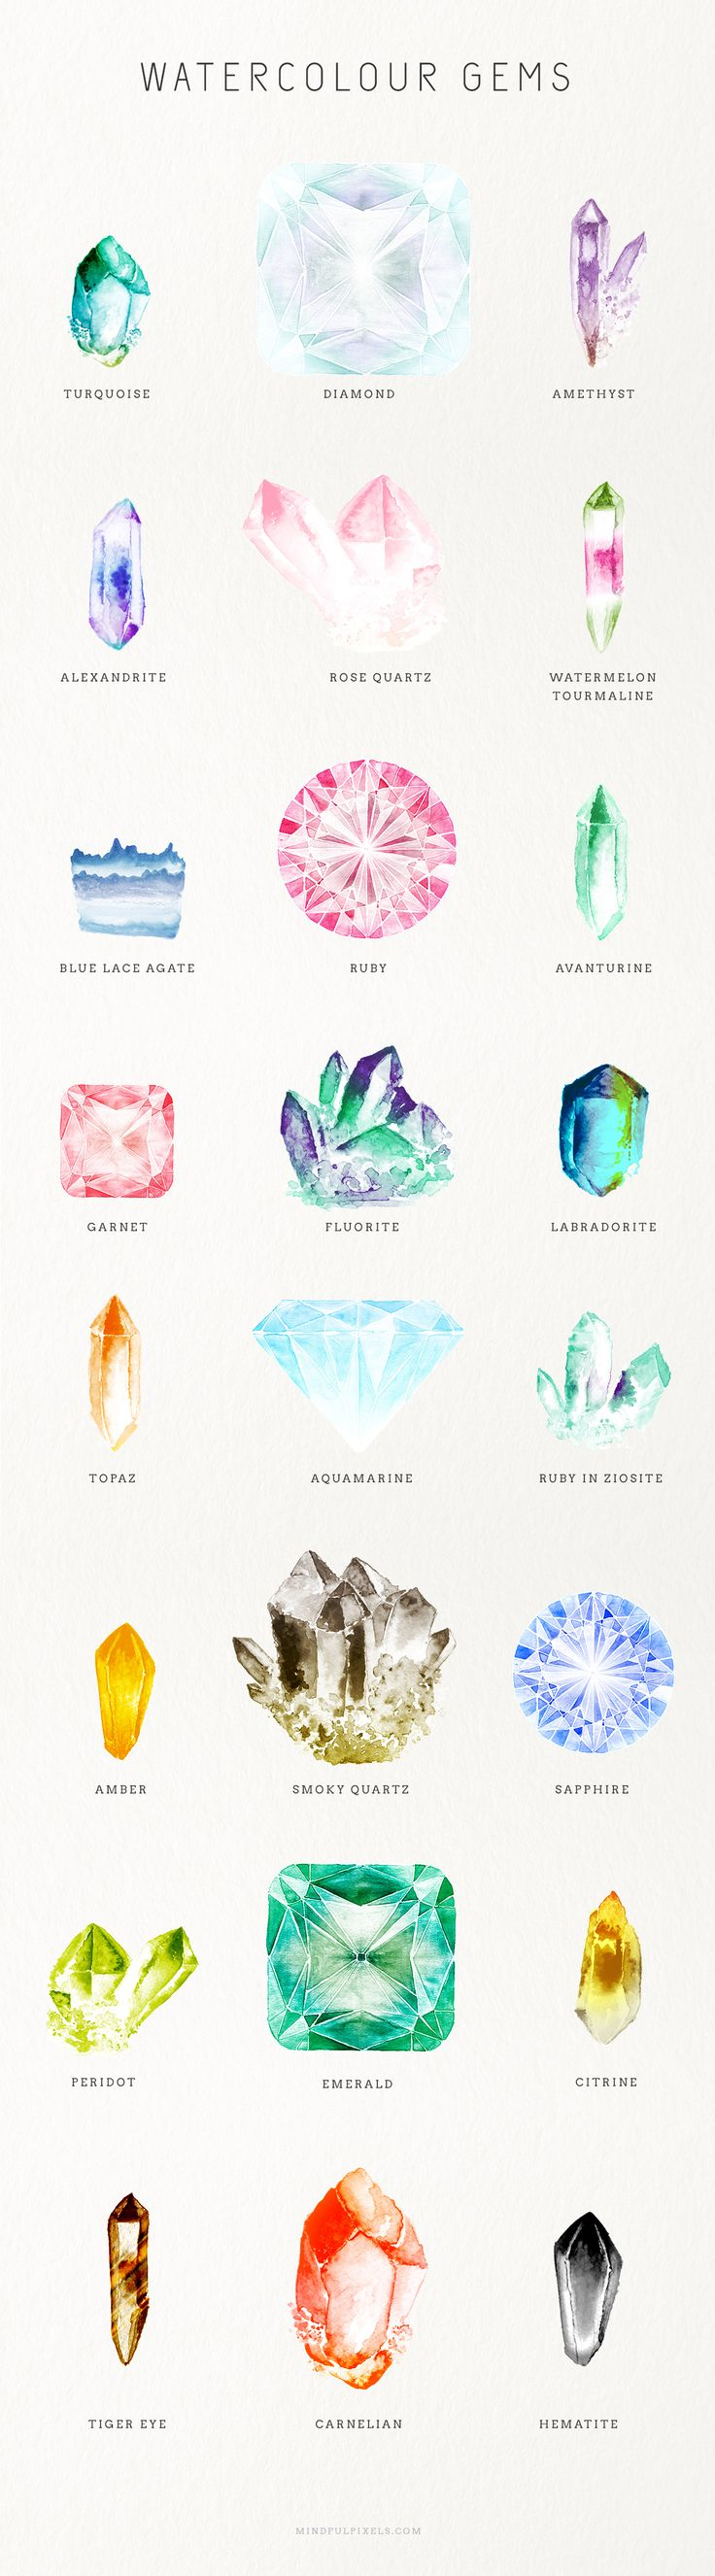 Watercolor gems--for my tattoo :)